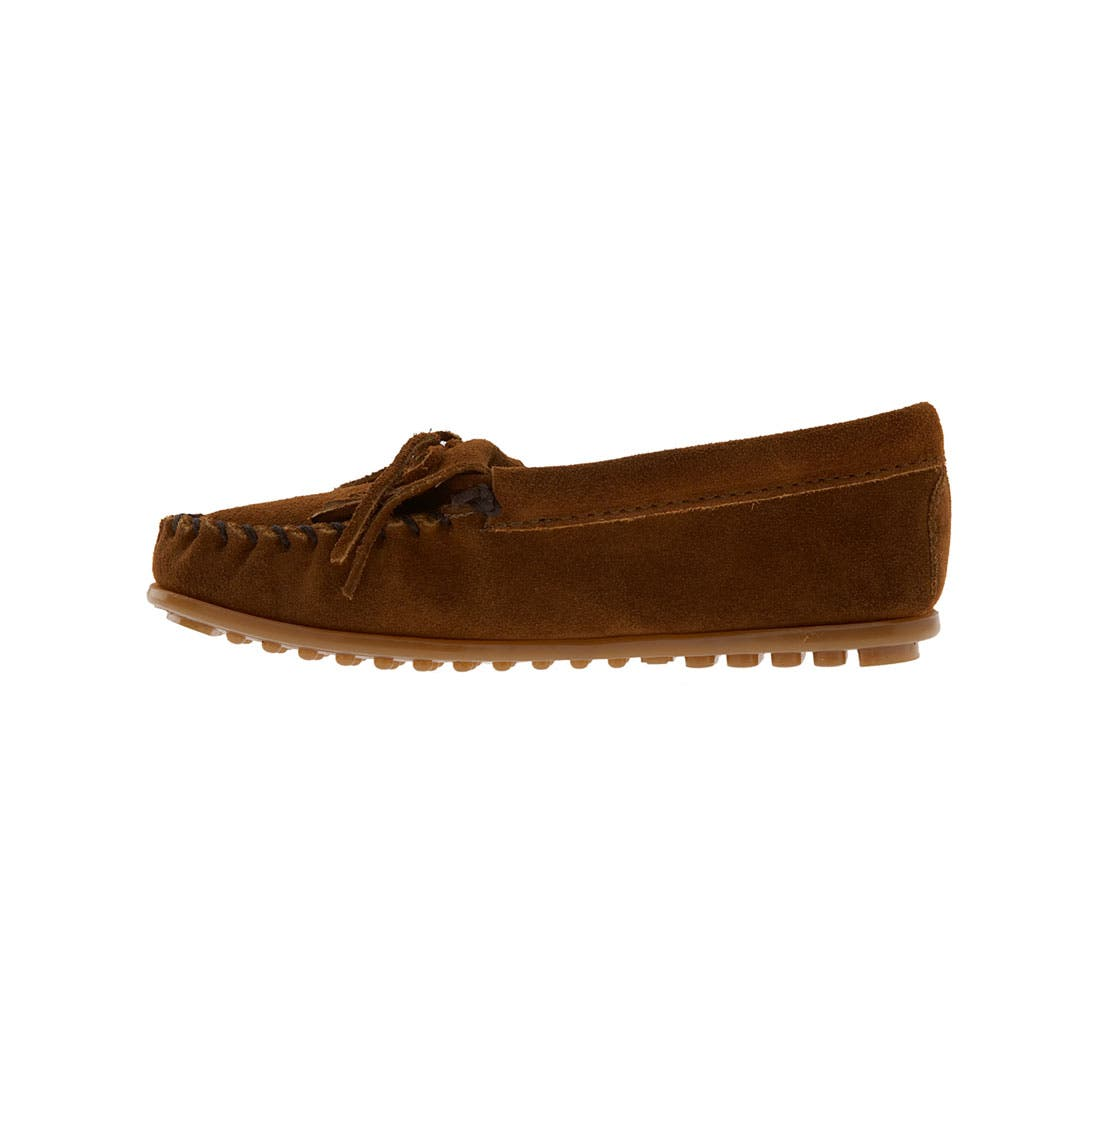 Alternate Image 2  - Minnetonka Kiltie Moccasin (Walker, Toddler, Little Kid & Big Kid)